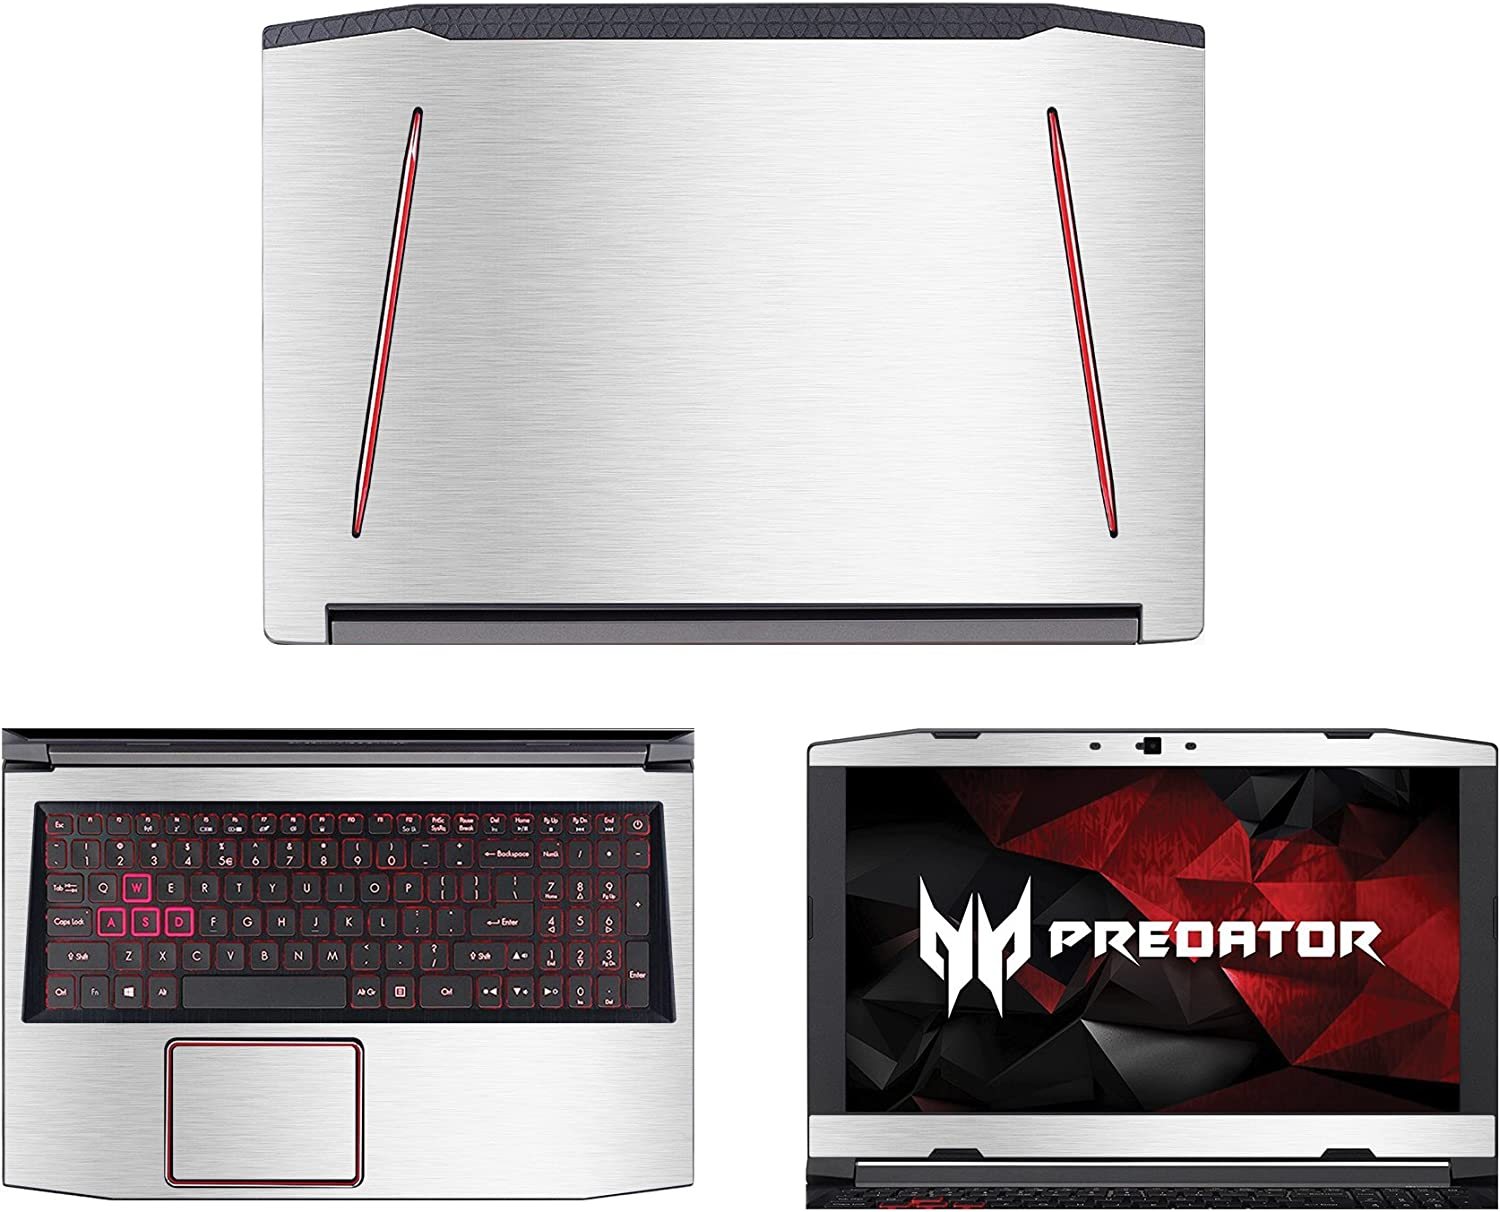 """decalrus - Protective Decal for Acer Predator Helios 300 G3-571 (15.6"""" Screen) Laptop Silver Texture Brushed Aluminum Skin case Cover wrap BAPredatorHelios300_G3-571Silver"""